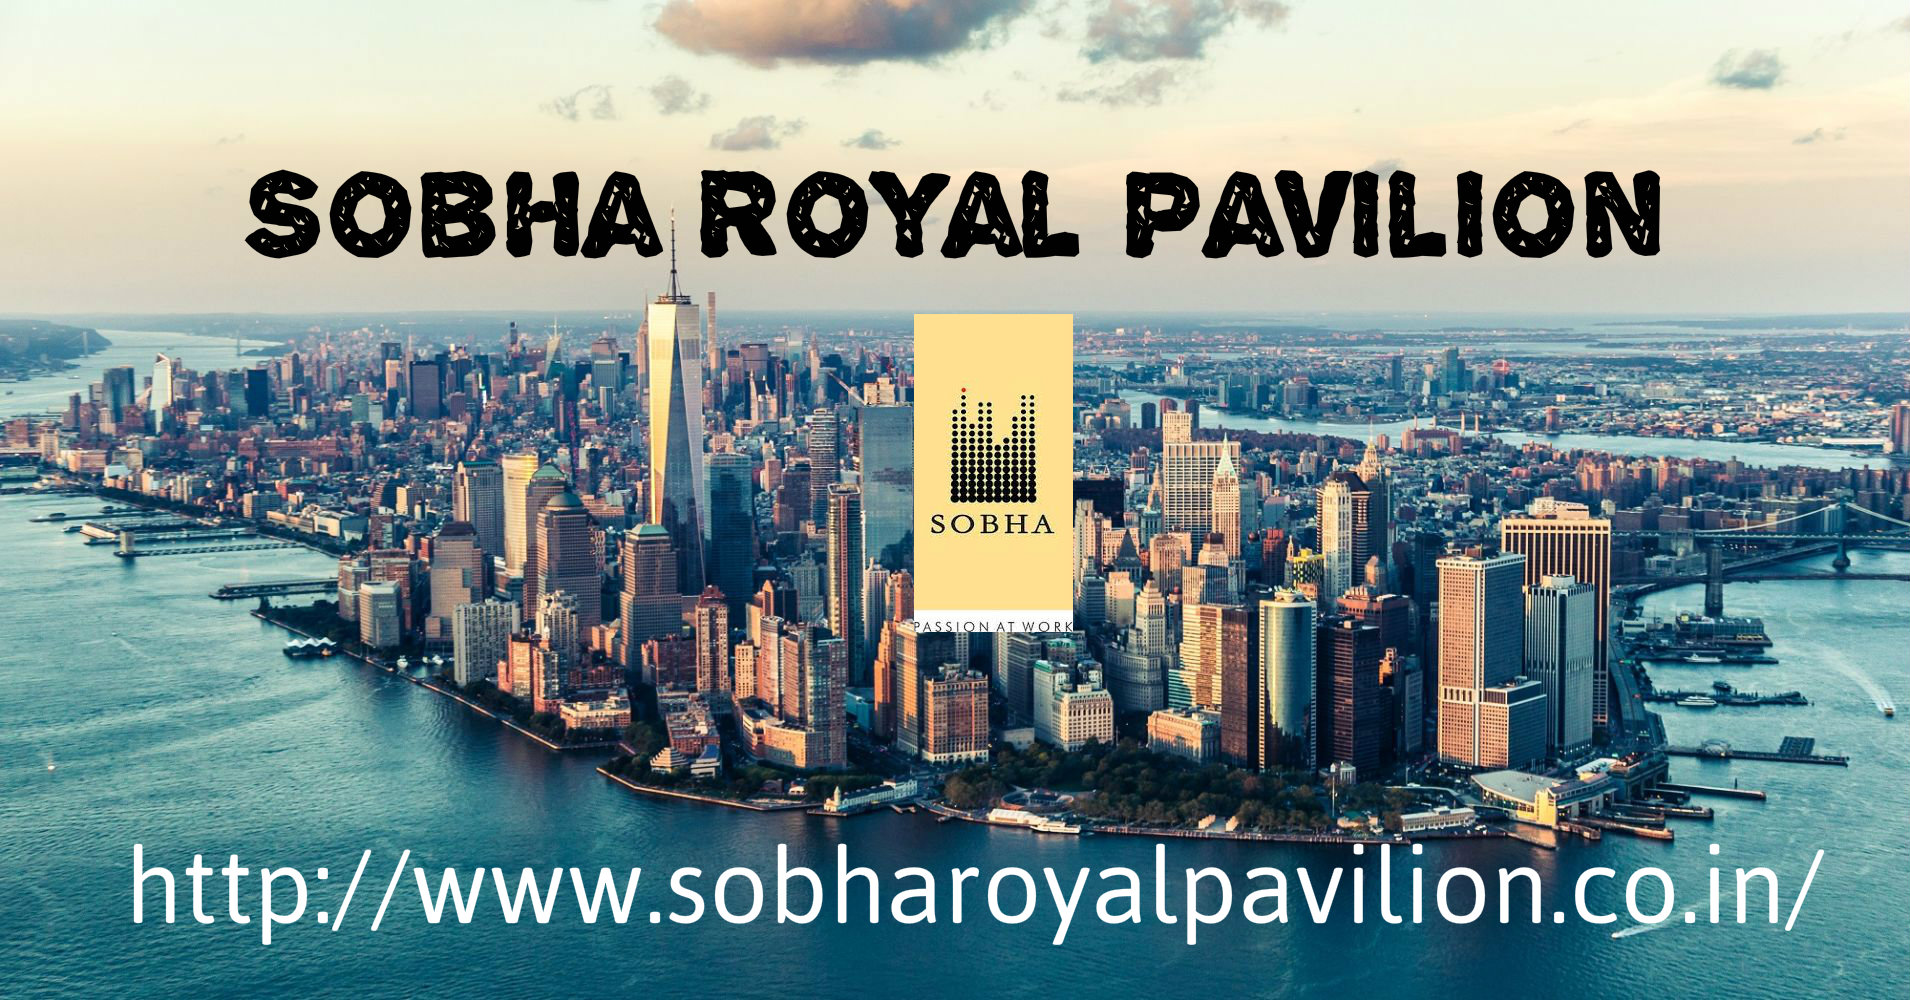 Sobha Royal Pavilion photo